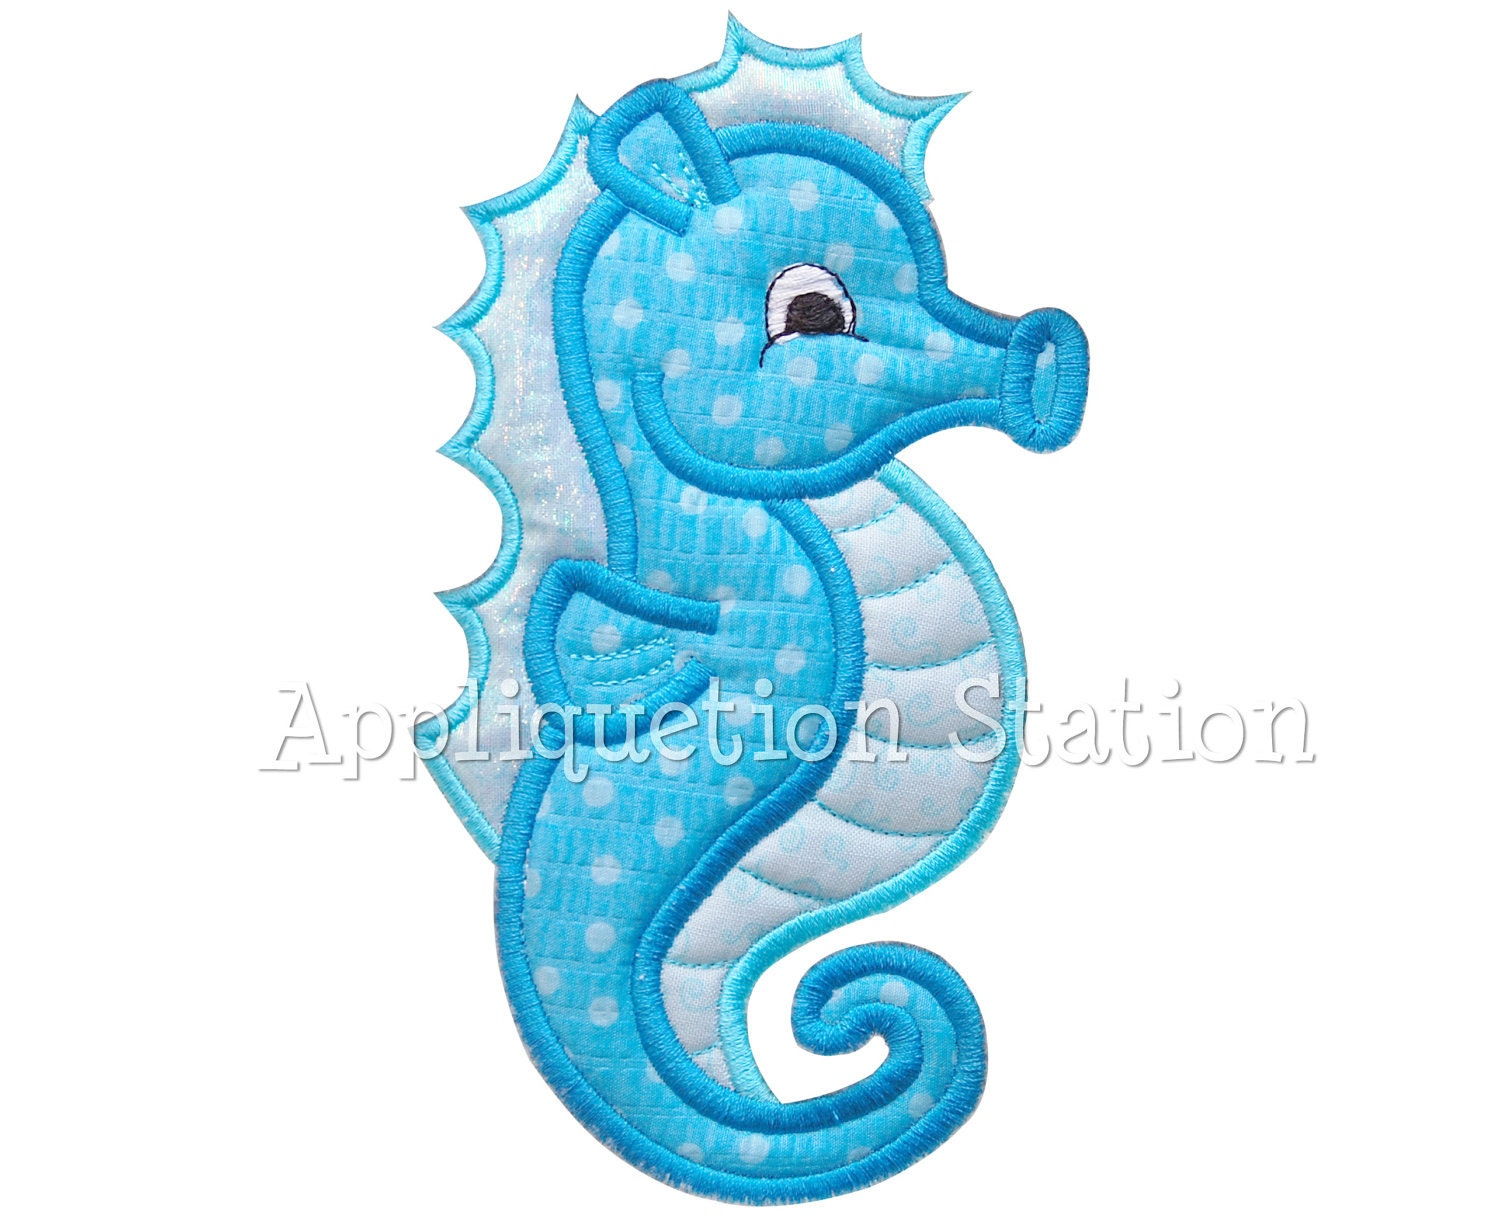 seahorse applique machine embroidery design by appliquetionstation. Black Bedroom Furniture Sets. Home Design Ideas